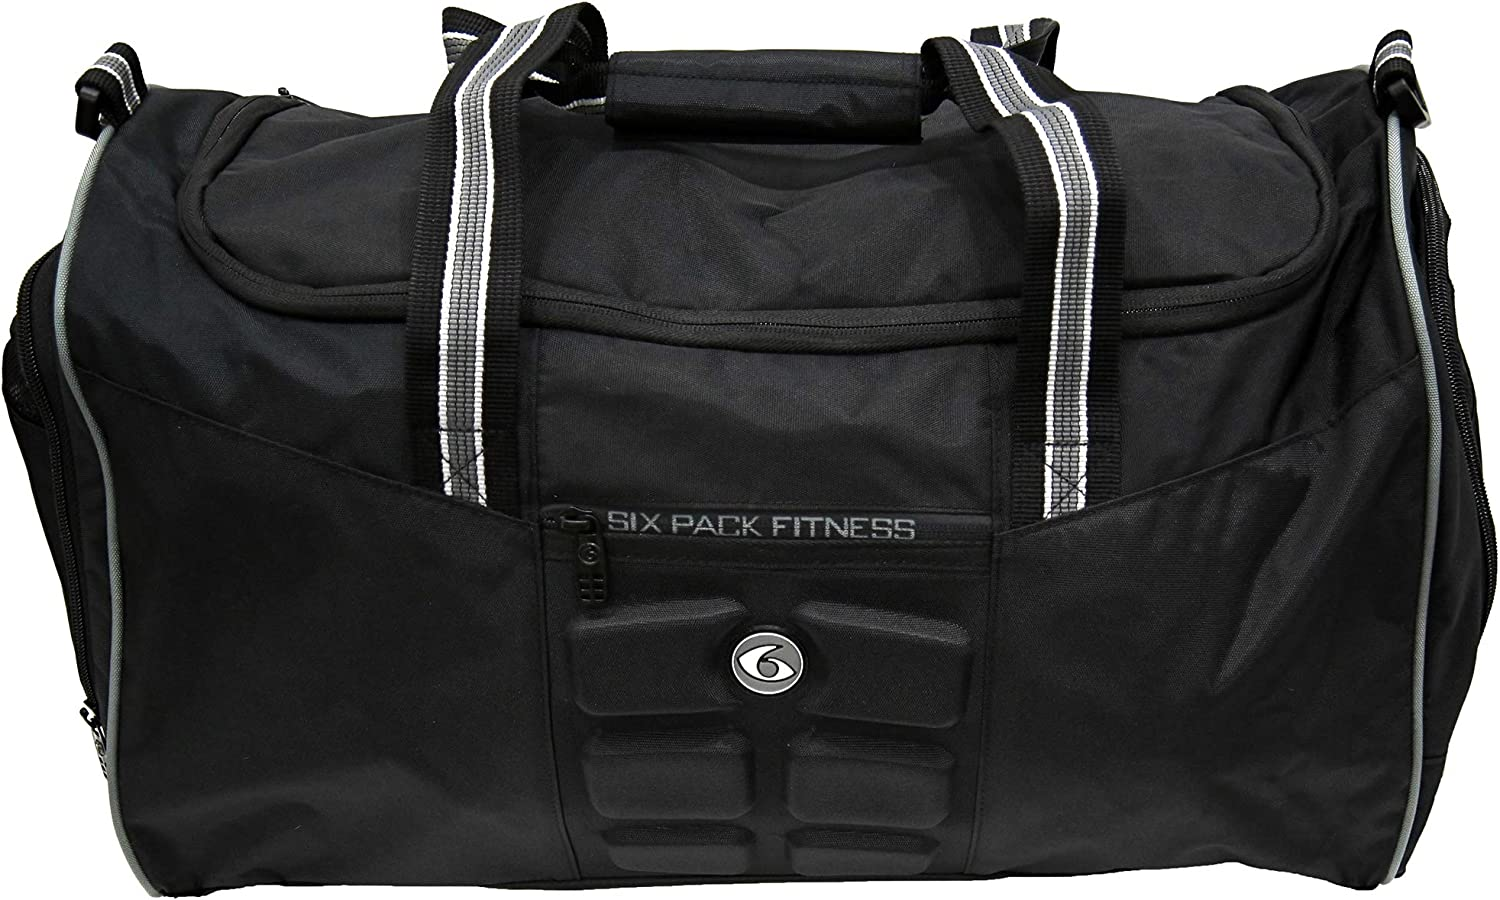 6 Pack Fitness Expert Meal Prep Management Beast Duffle W/ 3 - Meal Removable Core Stealth (Black/Black)